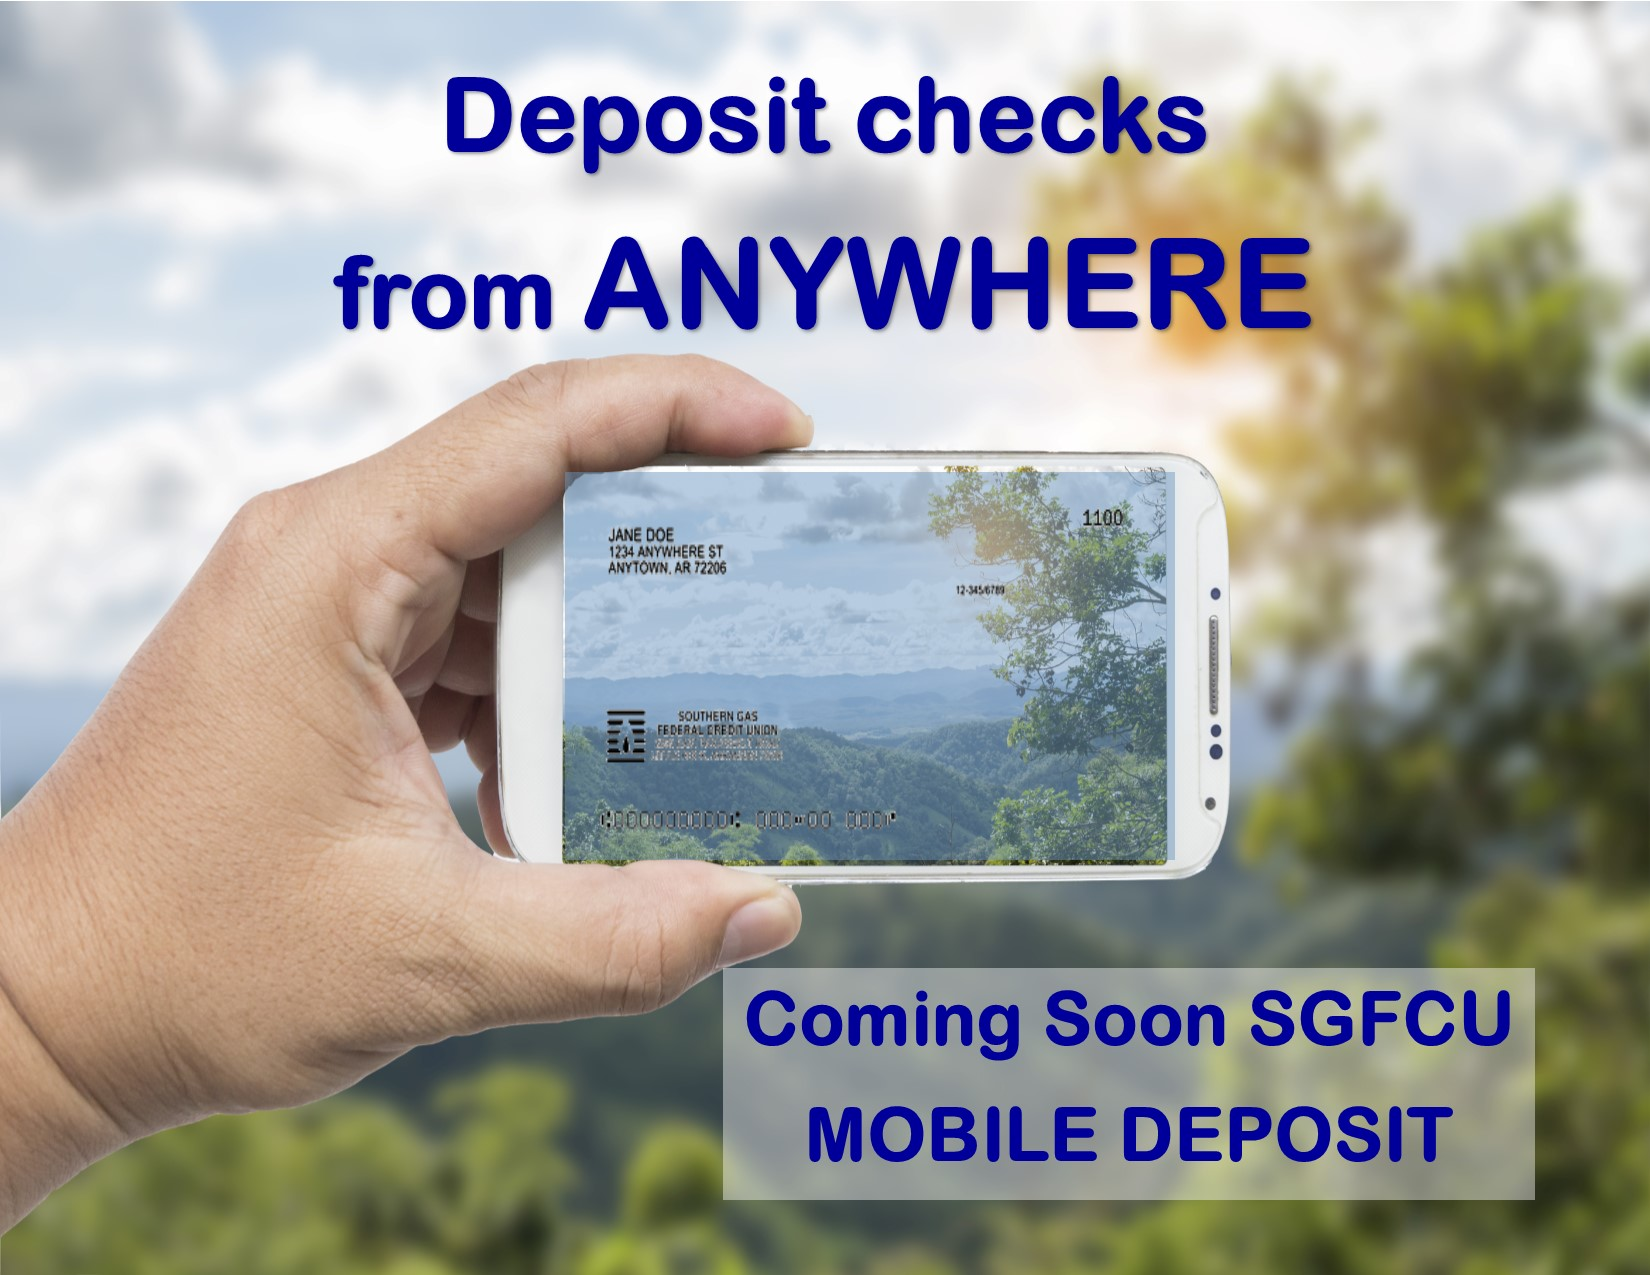 Remote check deposit is coming soon to Southern Gas Federal Credit Union